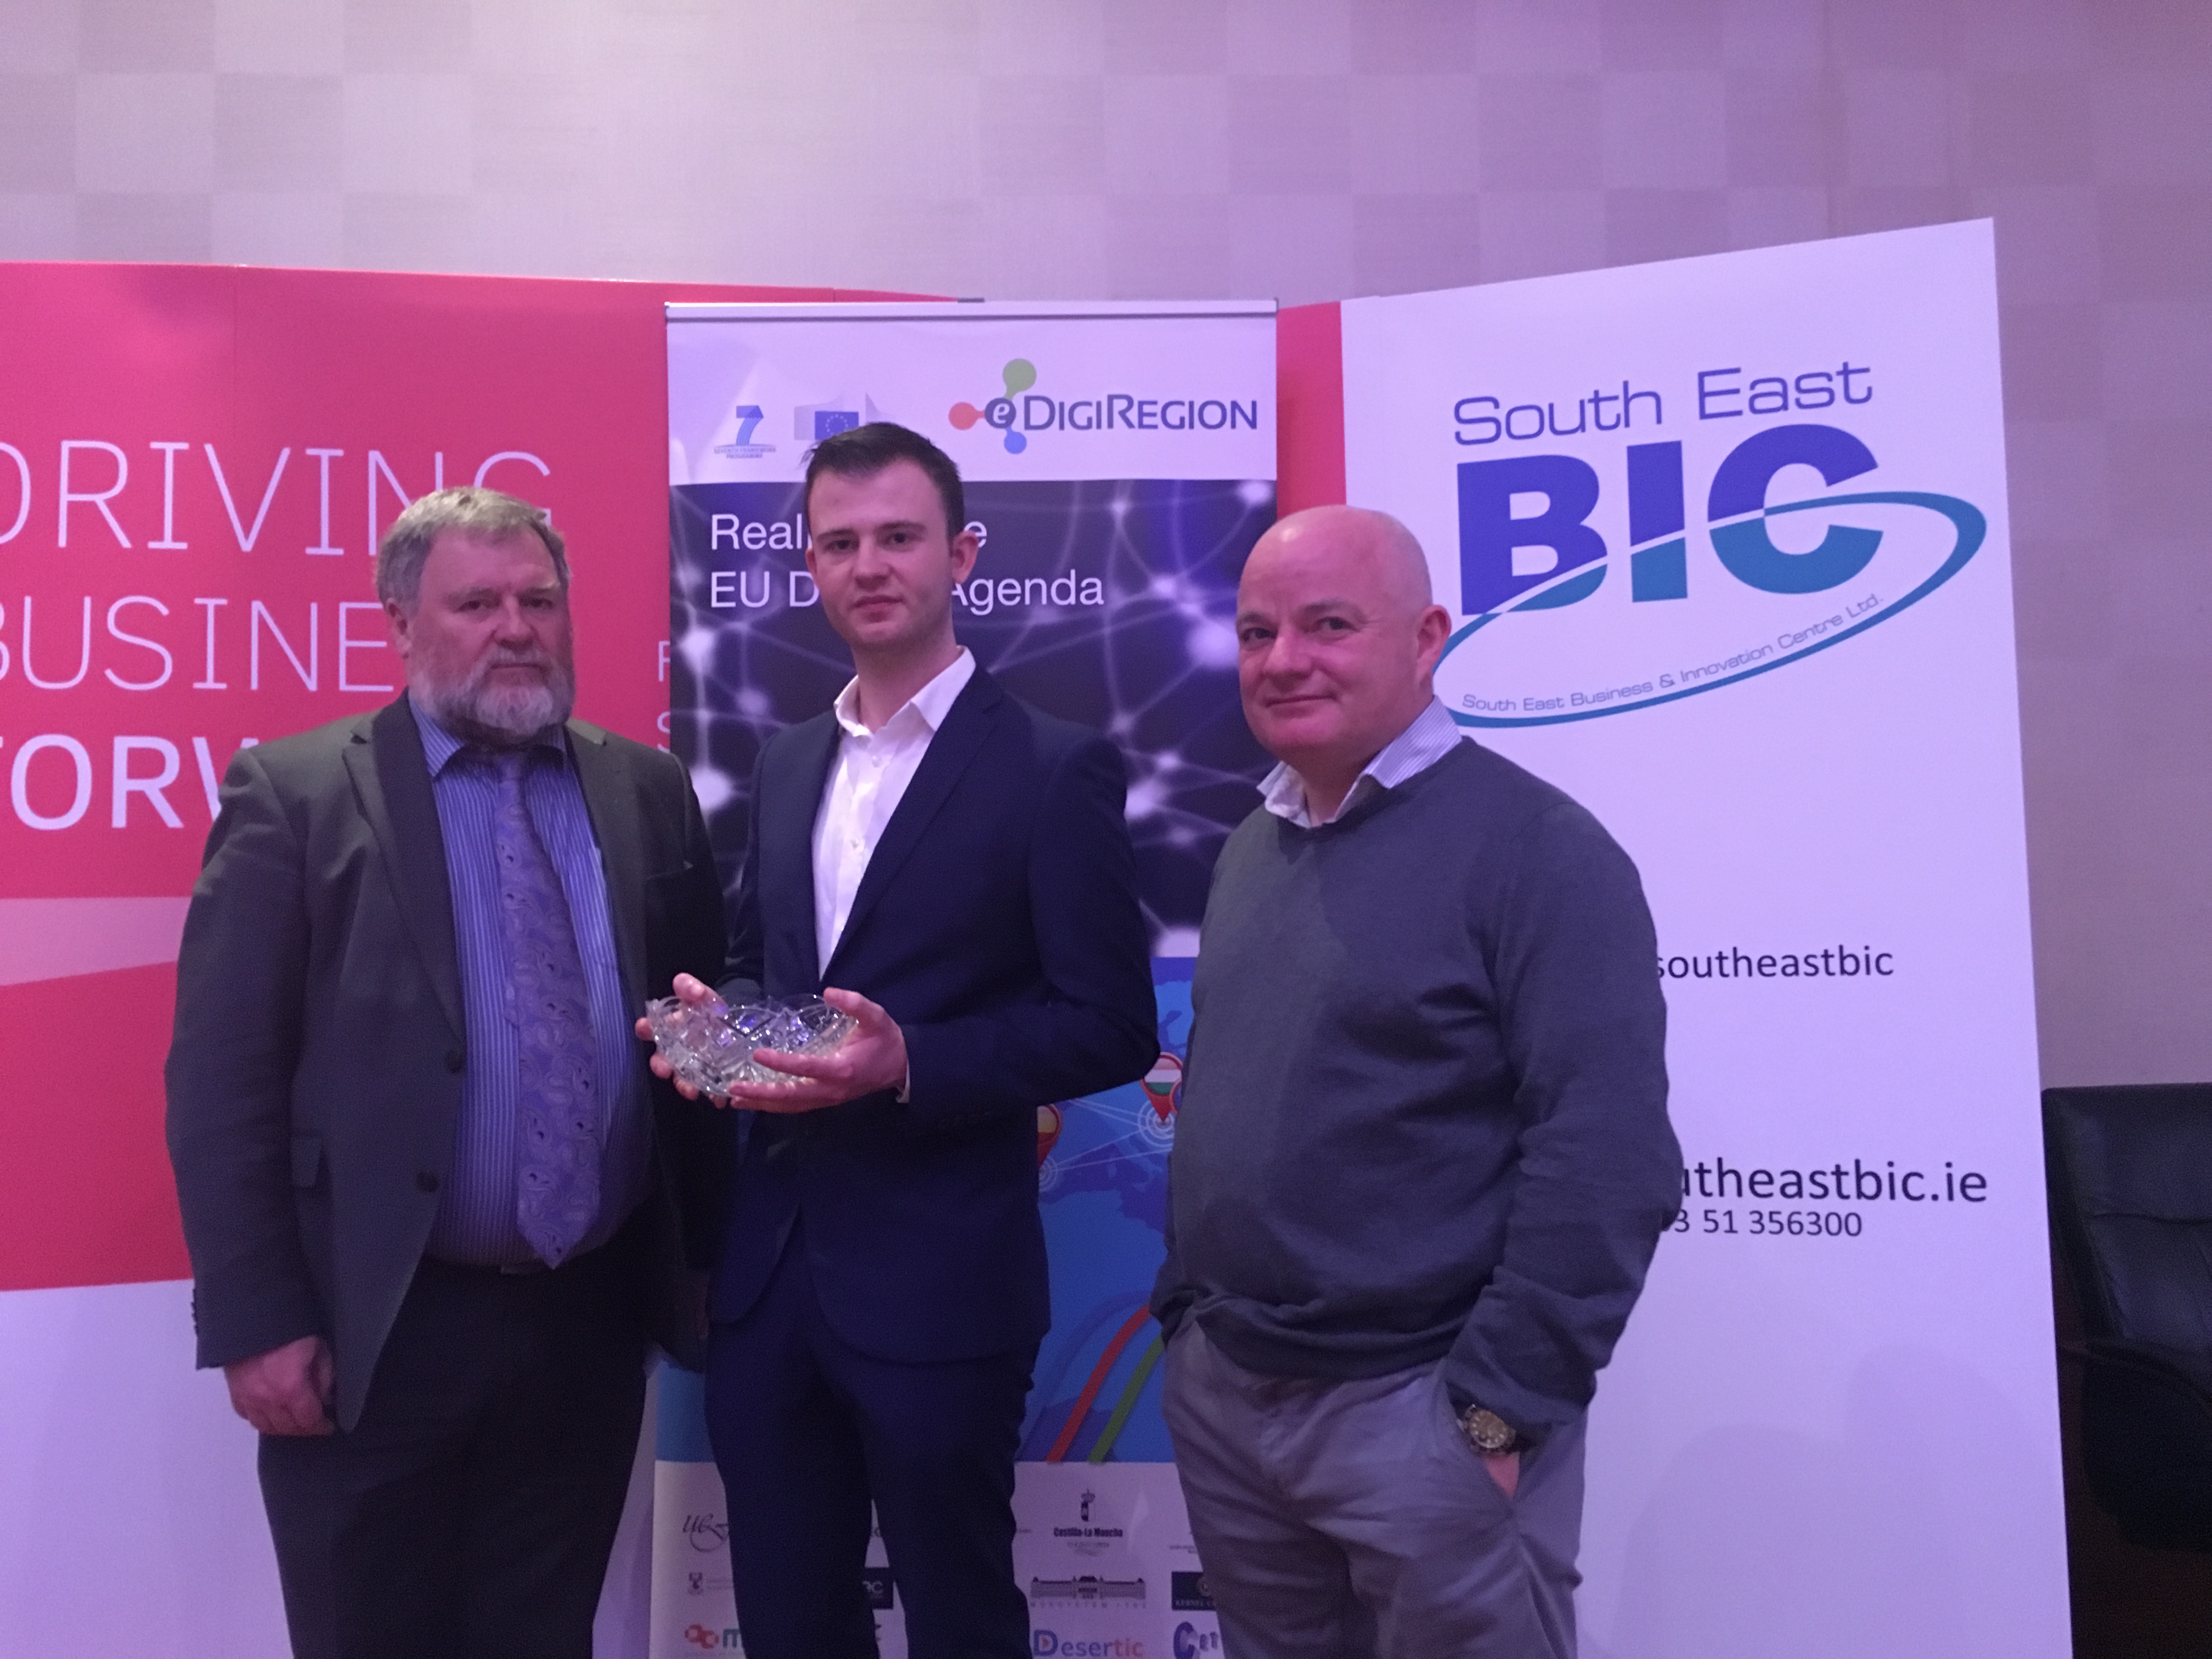 Pictured from left to right is WIT's Professor Bill O'Gorman, Daniel Thewlis, and Niall Olden of Kernel Capital.